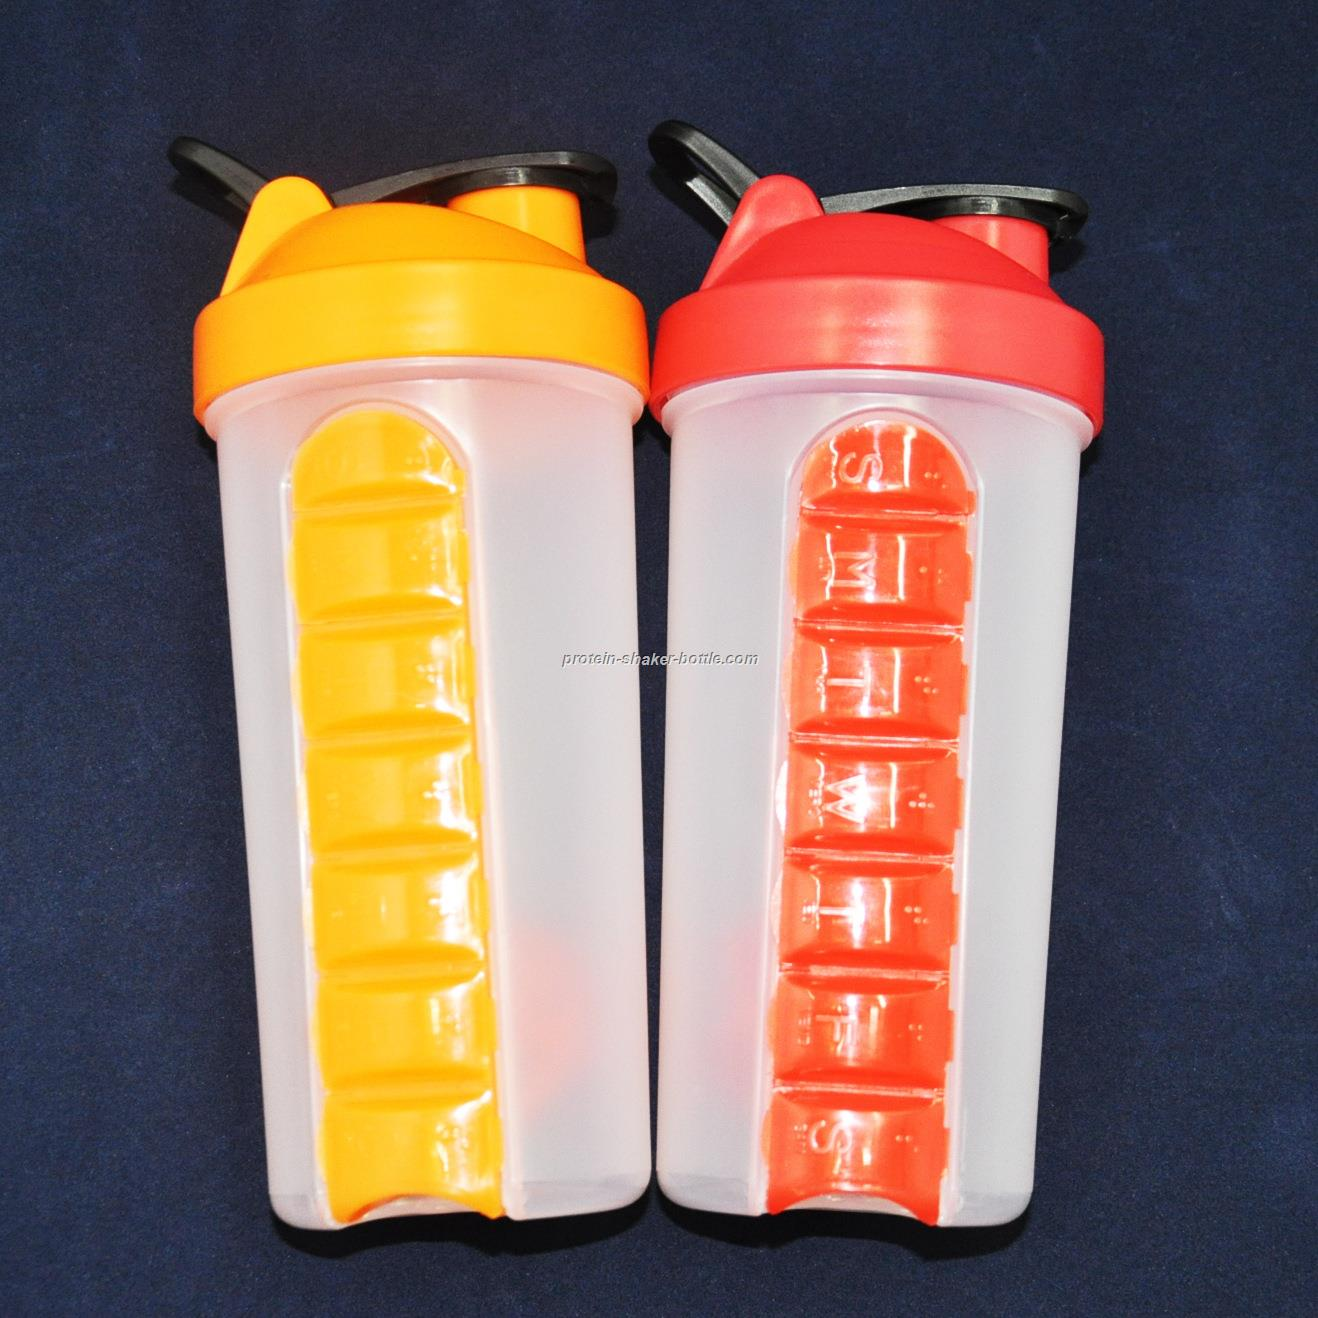 Pill Box shaker bottles